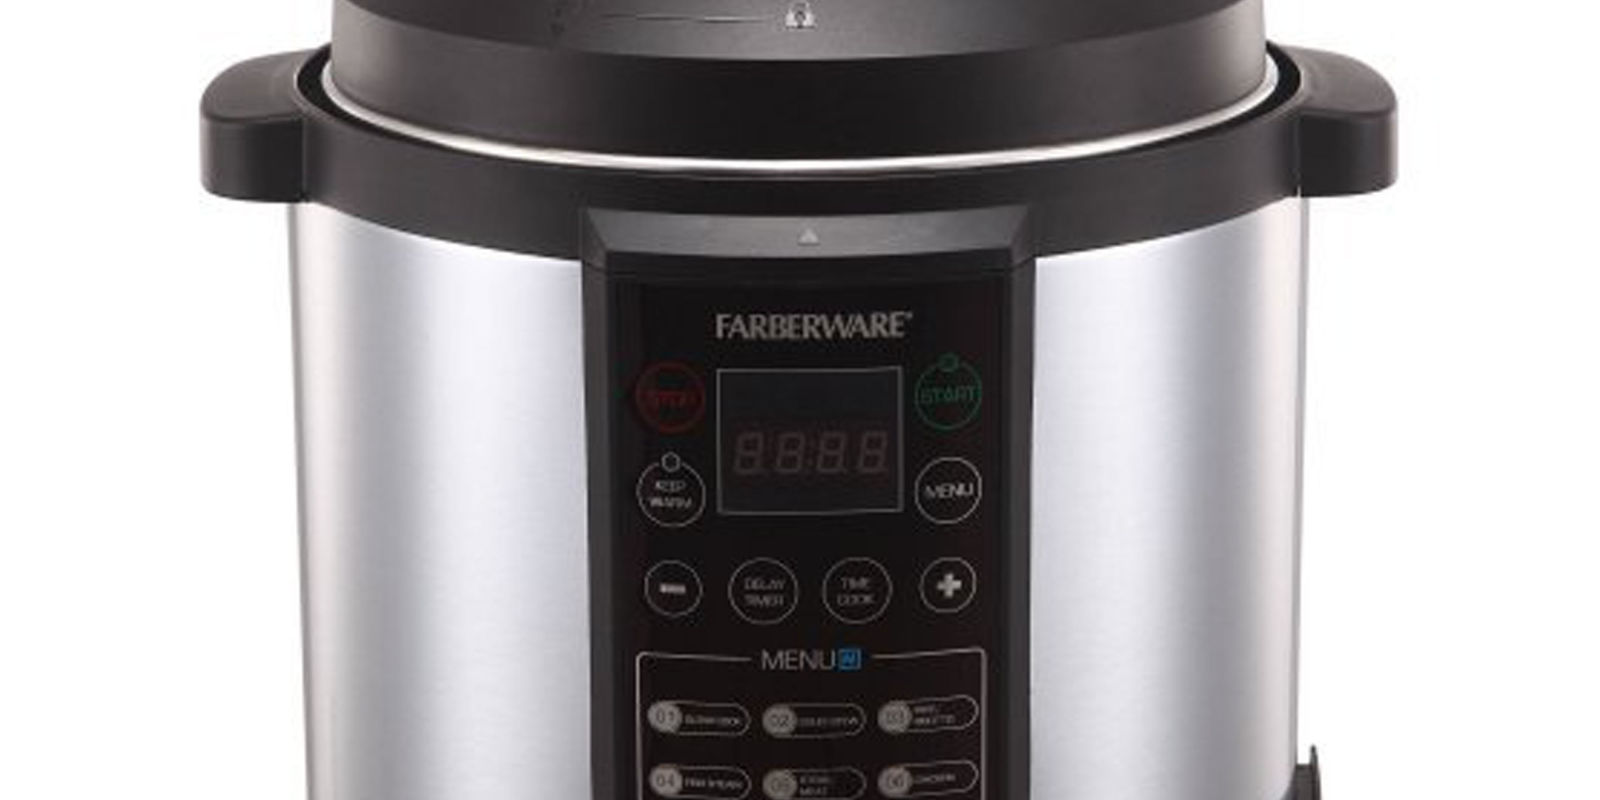 Farberware Pressure Cooker Review, Price and Features